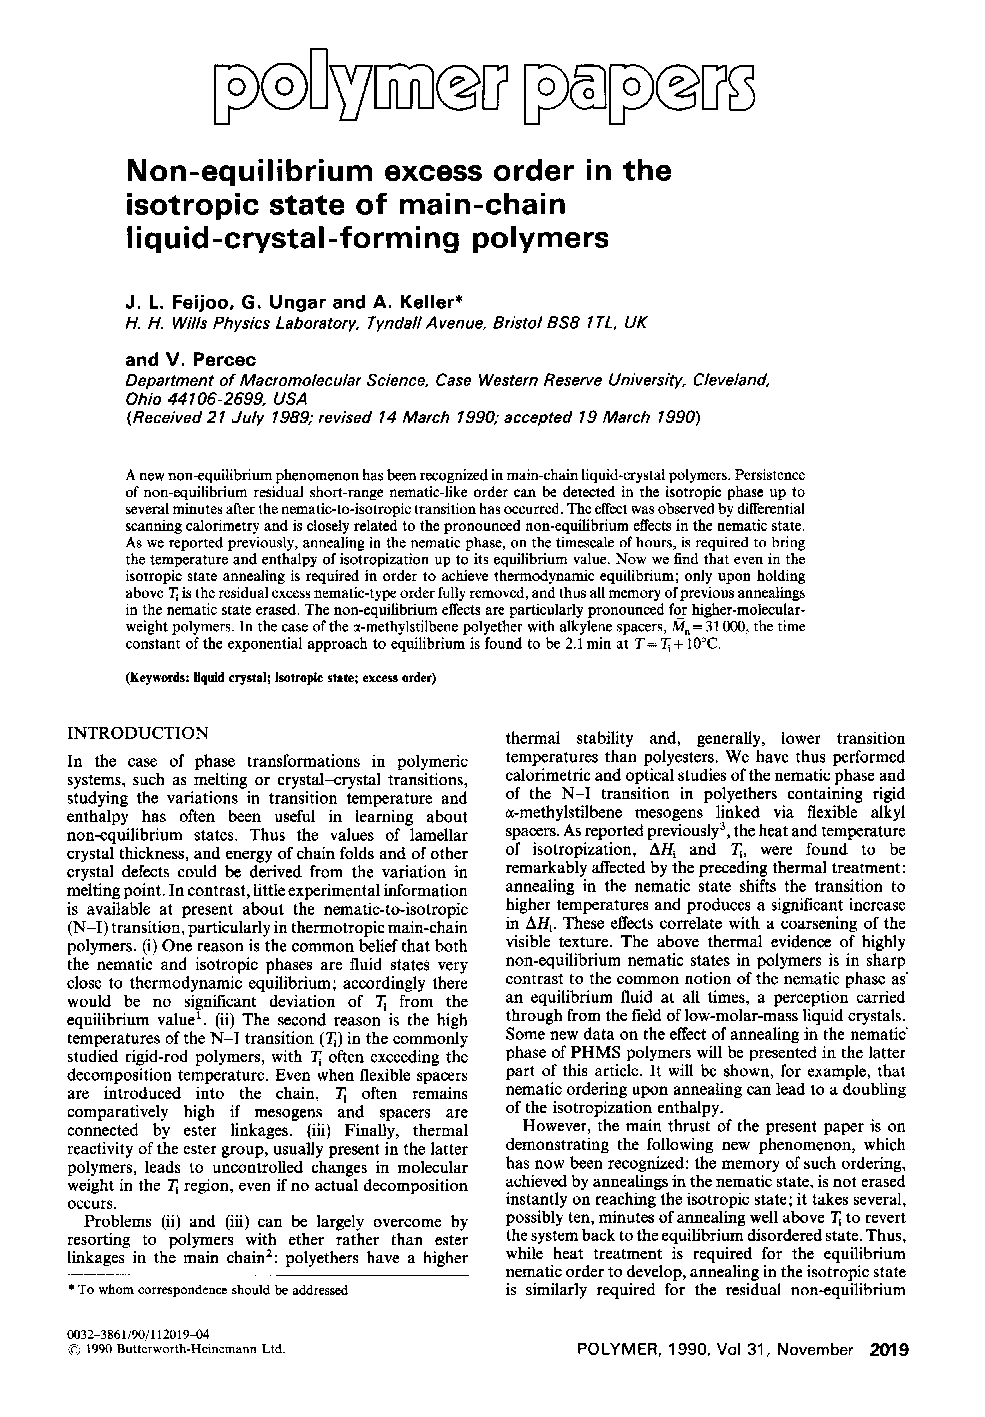 Non-equilibrium excess order in the isotropic state of main-chain liquid-crystal-forming polymers